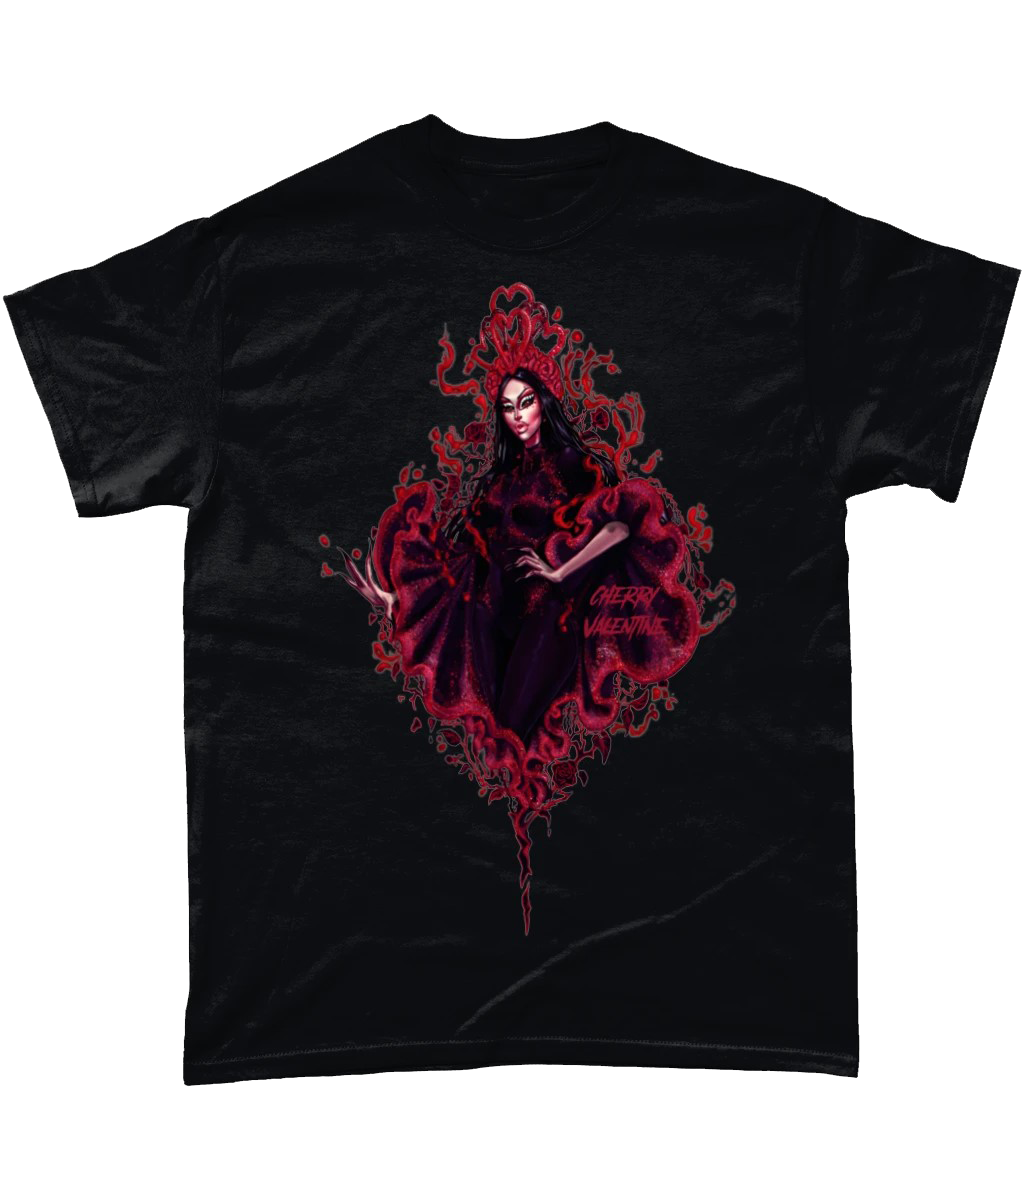 Cherry Valentine - First Love T-Shirt